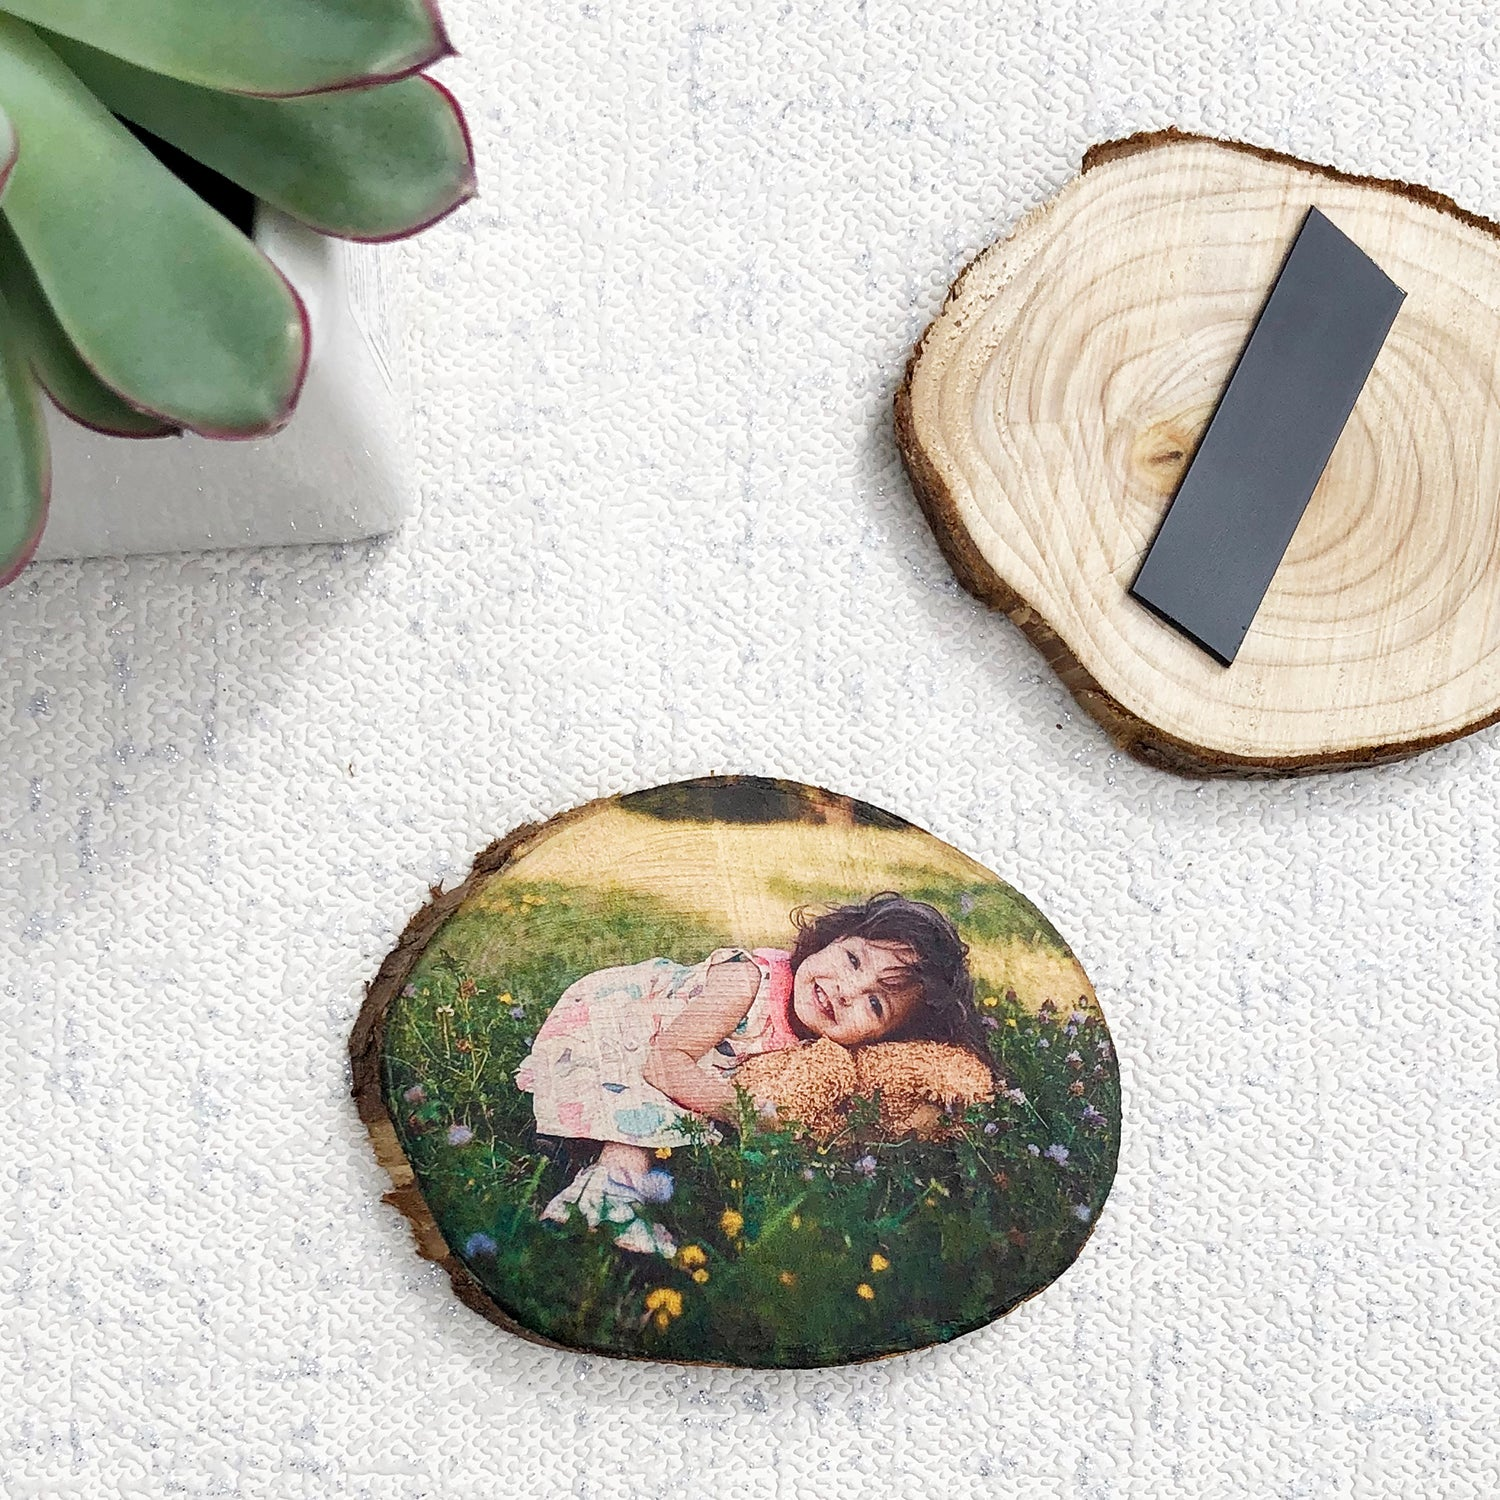 A wood slice fridge magnet showing a small child lying in a meadow. Photo also shows the back of a fridge magnet and a small plant.